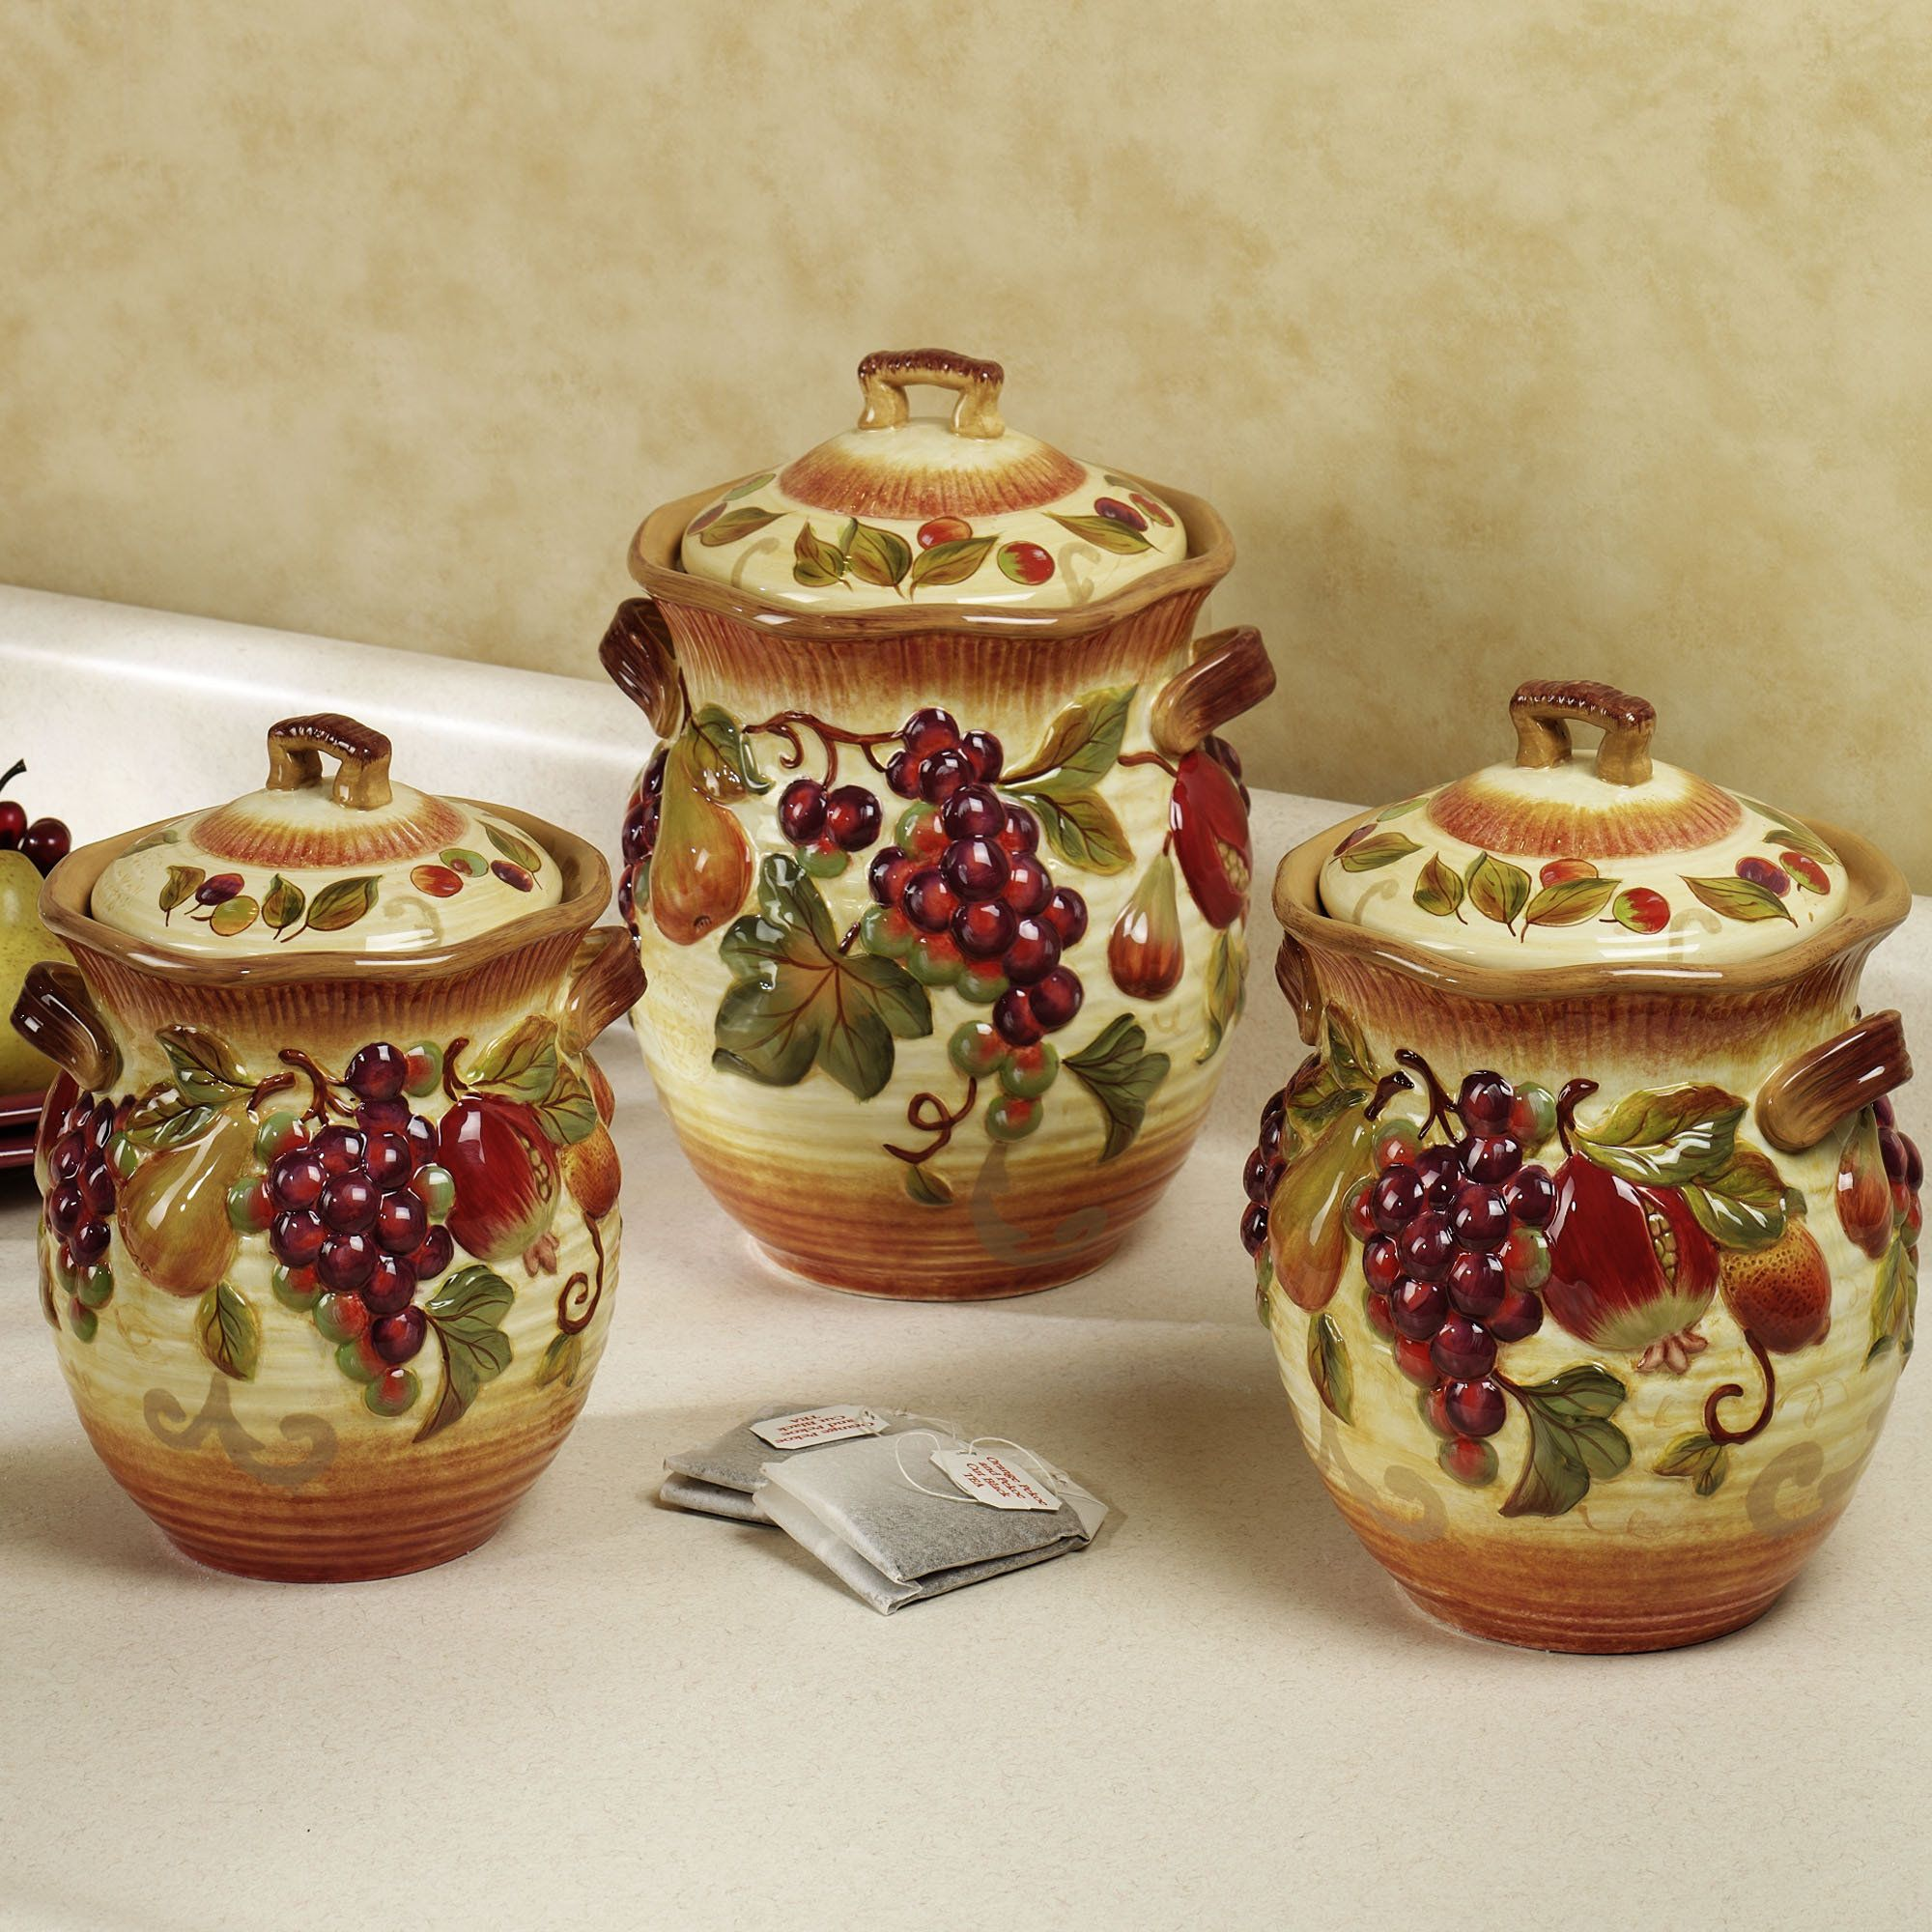 Rustic Kitchen Canister Sets Tuscan Style Dish Set Kitchen Canisters Iron Furniture Metal